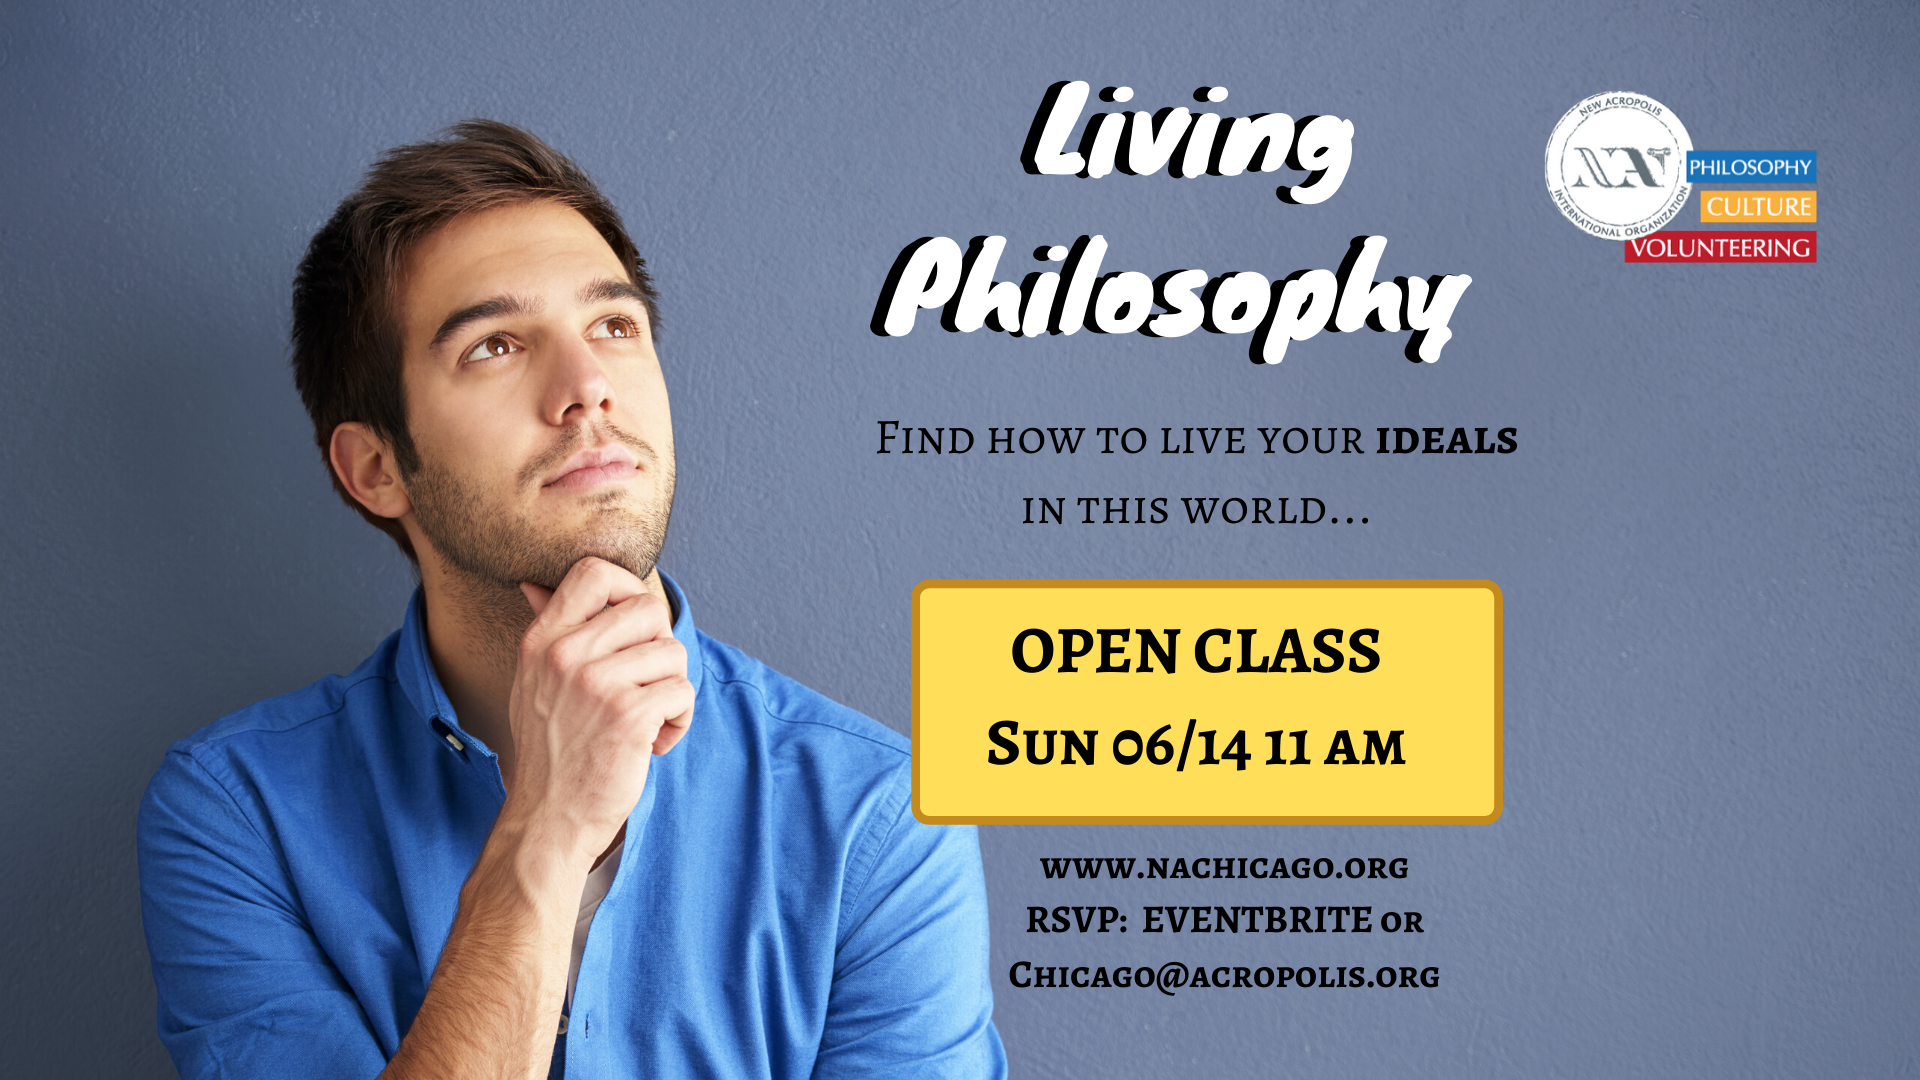 The Living Philosophy course - Open Class